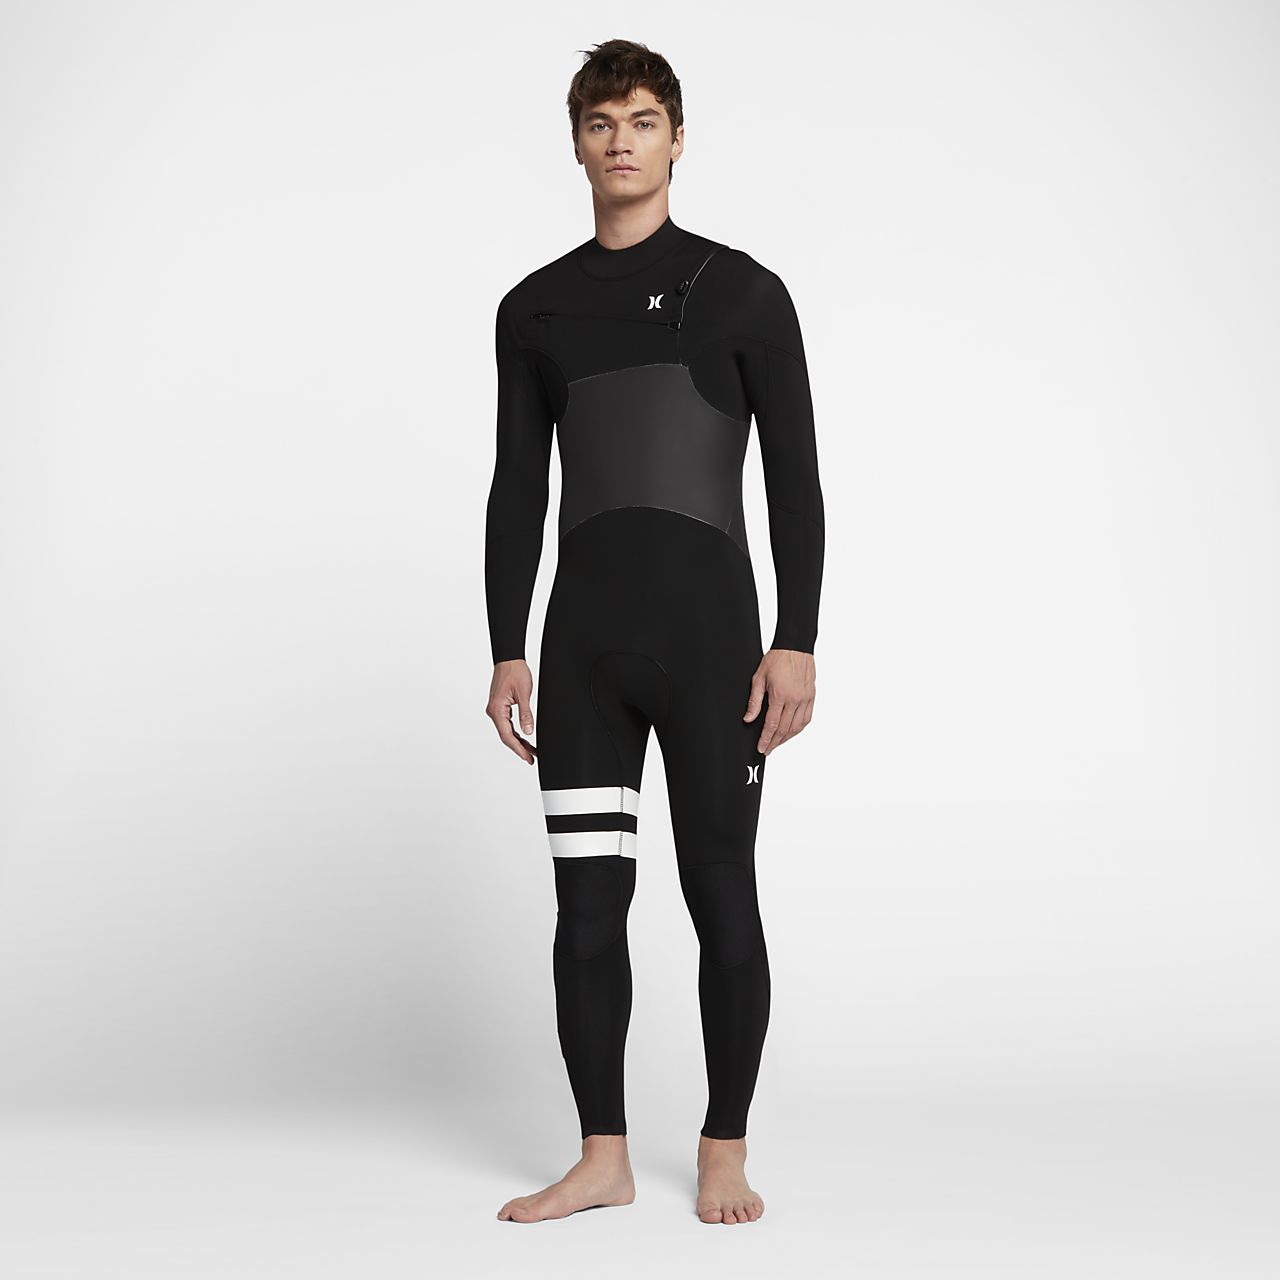 Hurley Advantage Plus 5/3mm Fullsuit Men's Wetsuit